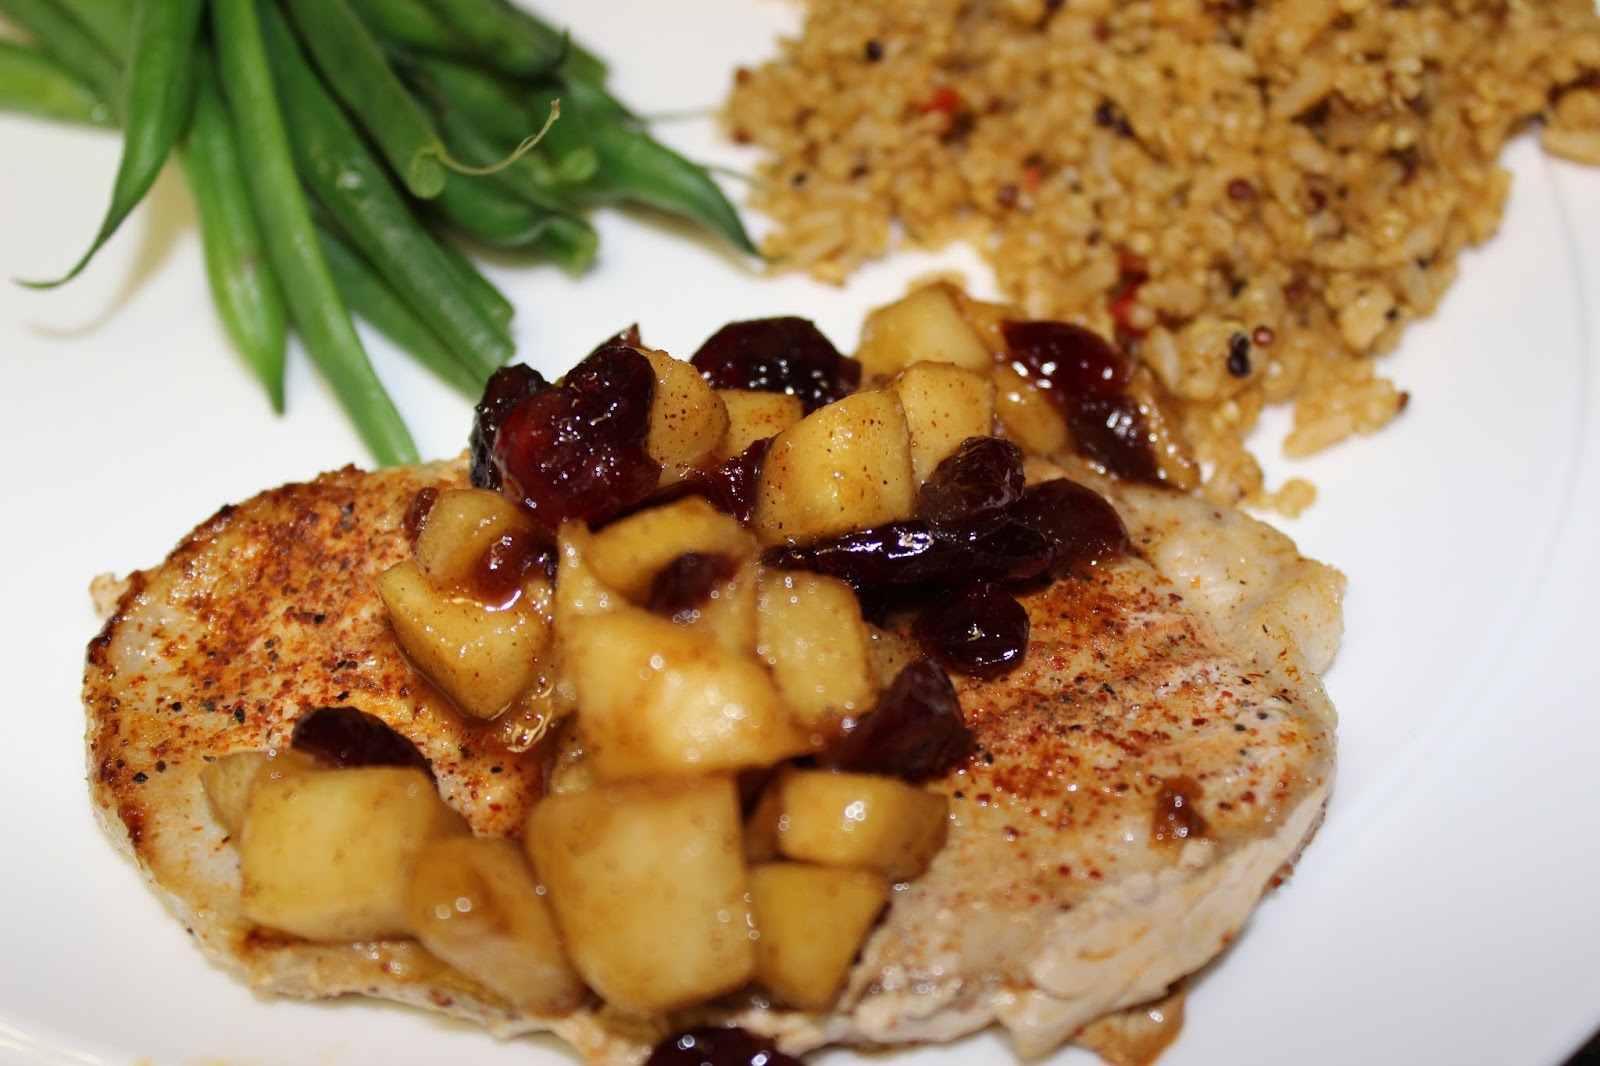 ... pork chops with grilled new york pork chops grilled new york pork